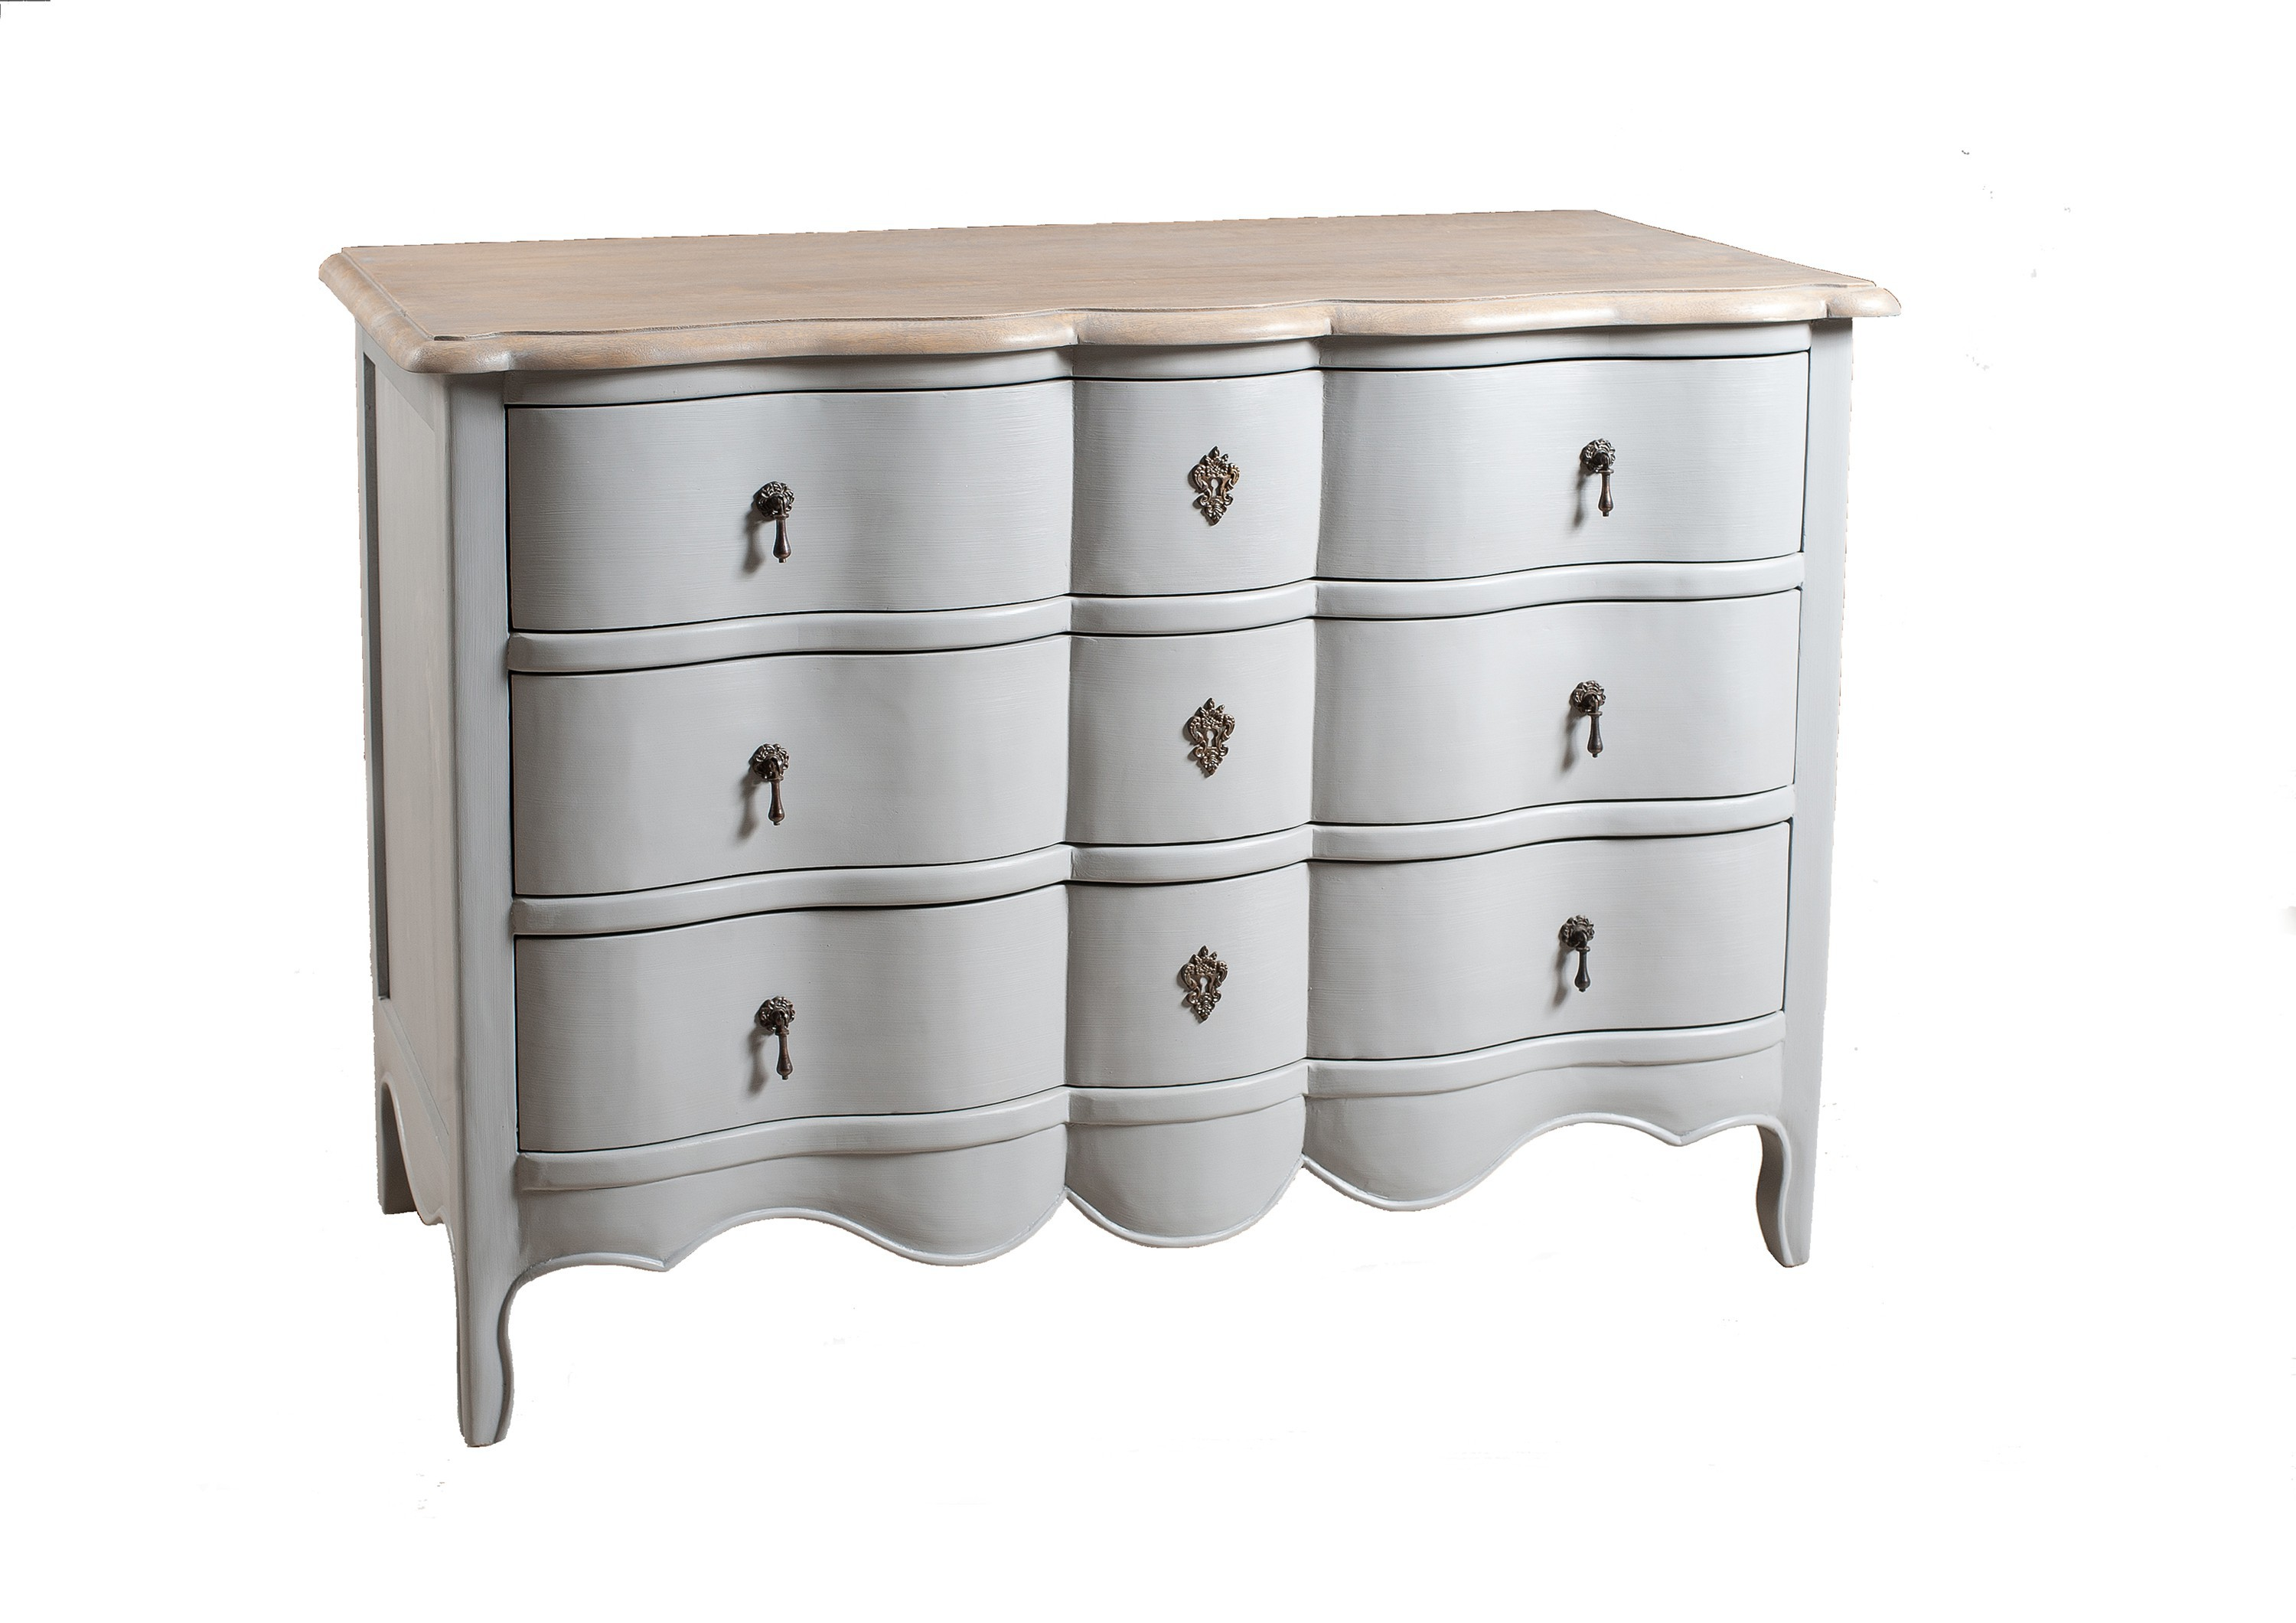 commode chiffonnier blanc id es de d coration int rieure french decor. Black Bedroom Furniture Sets. Home Design Ideas